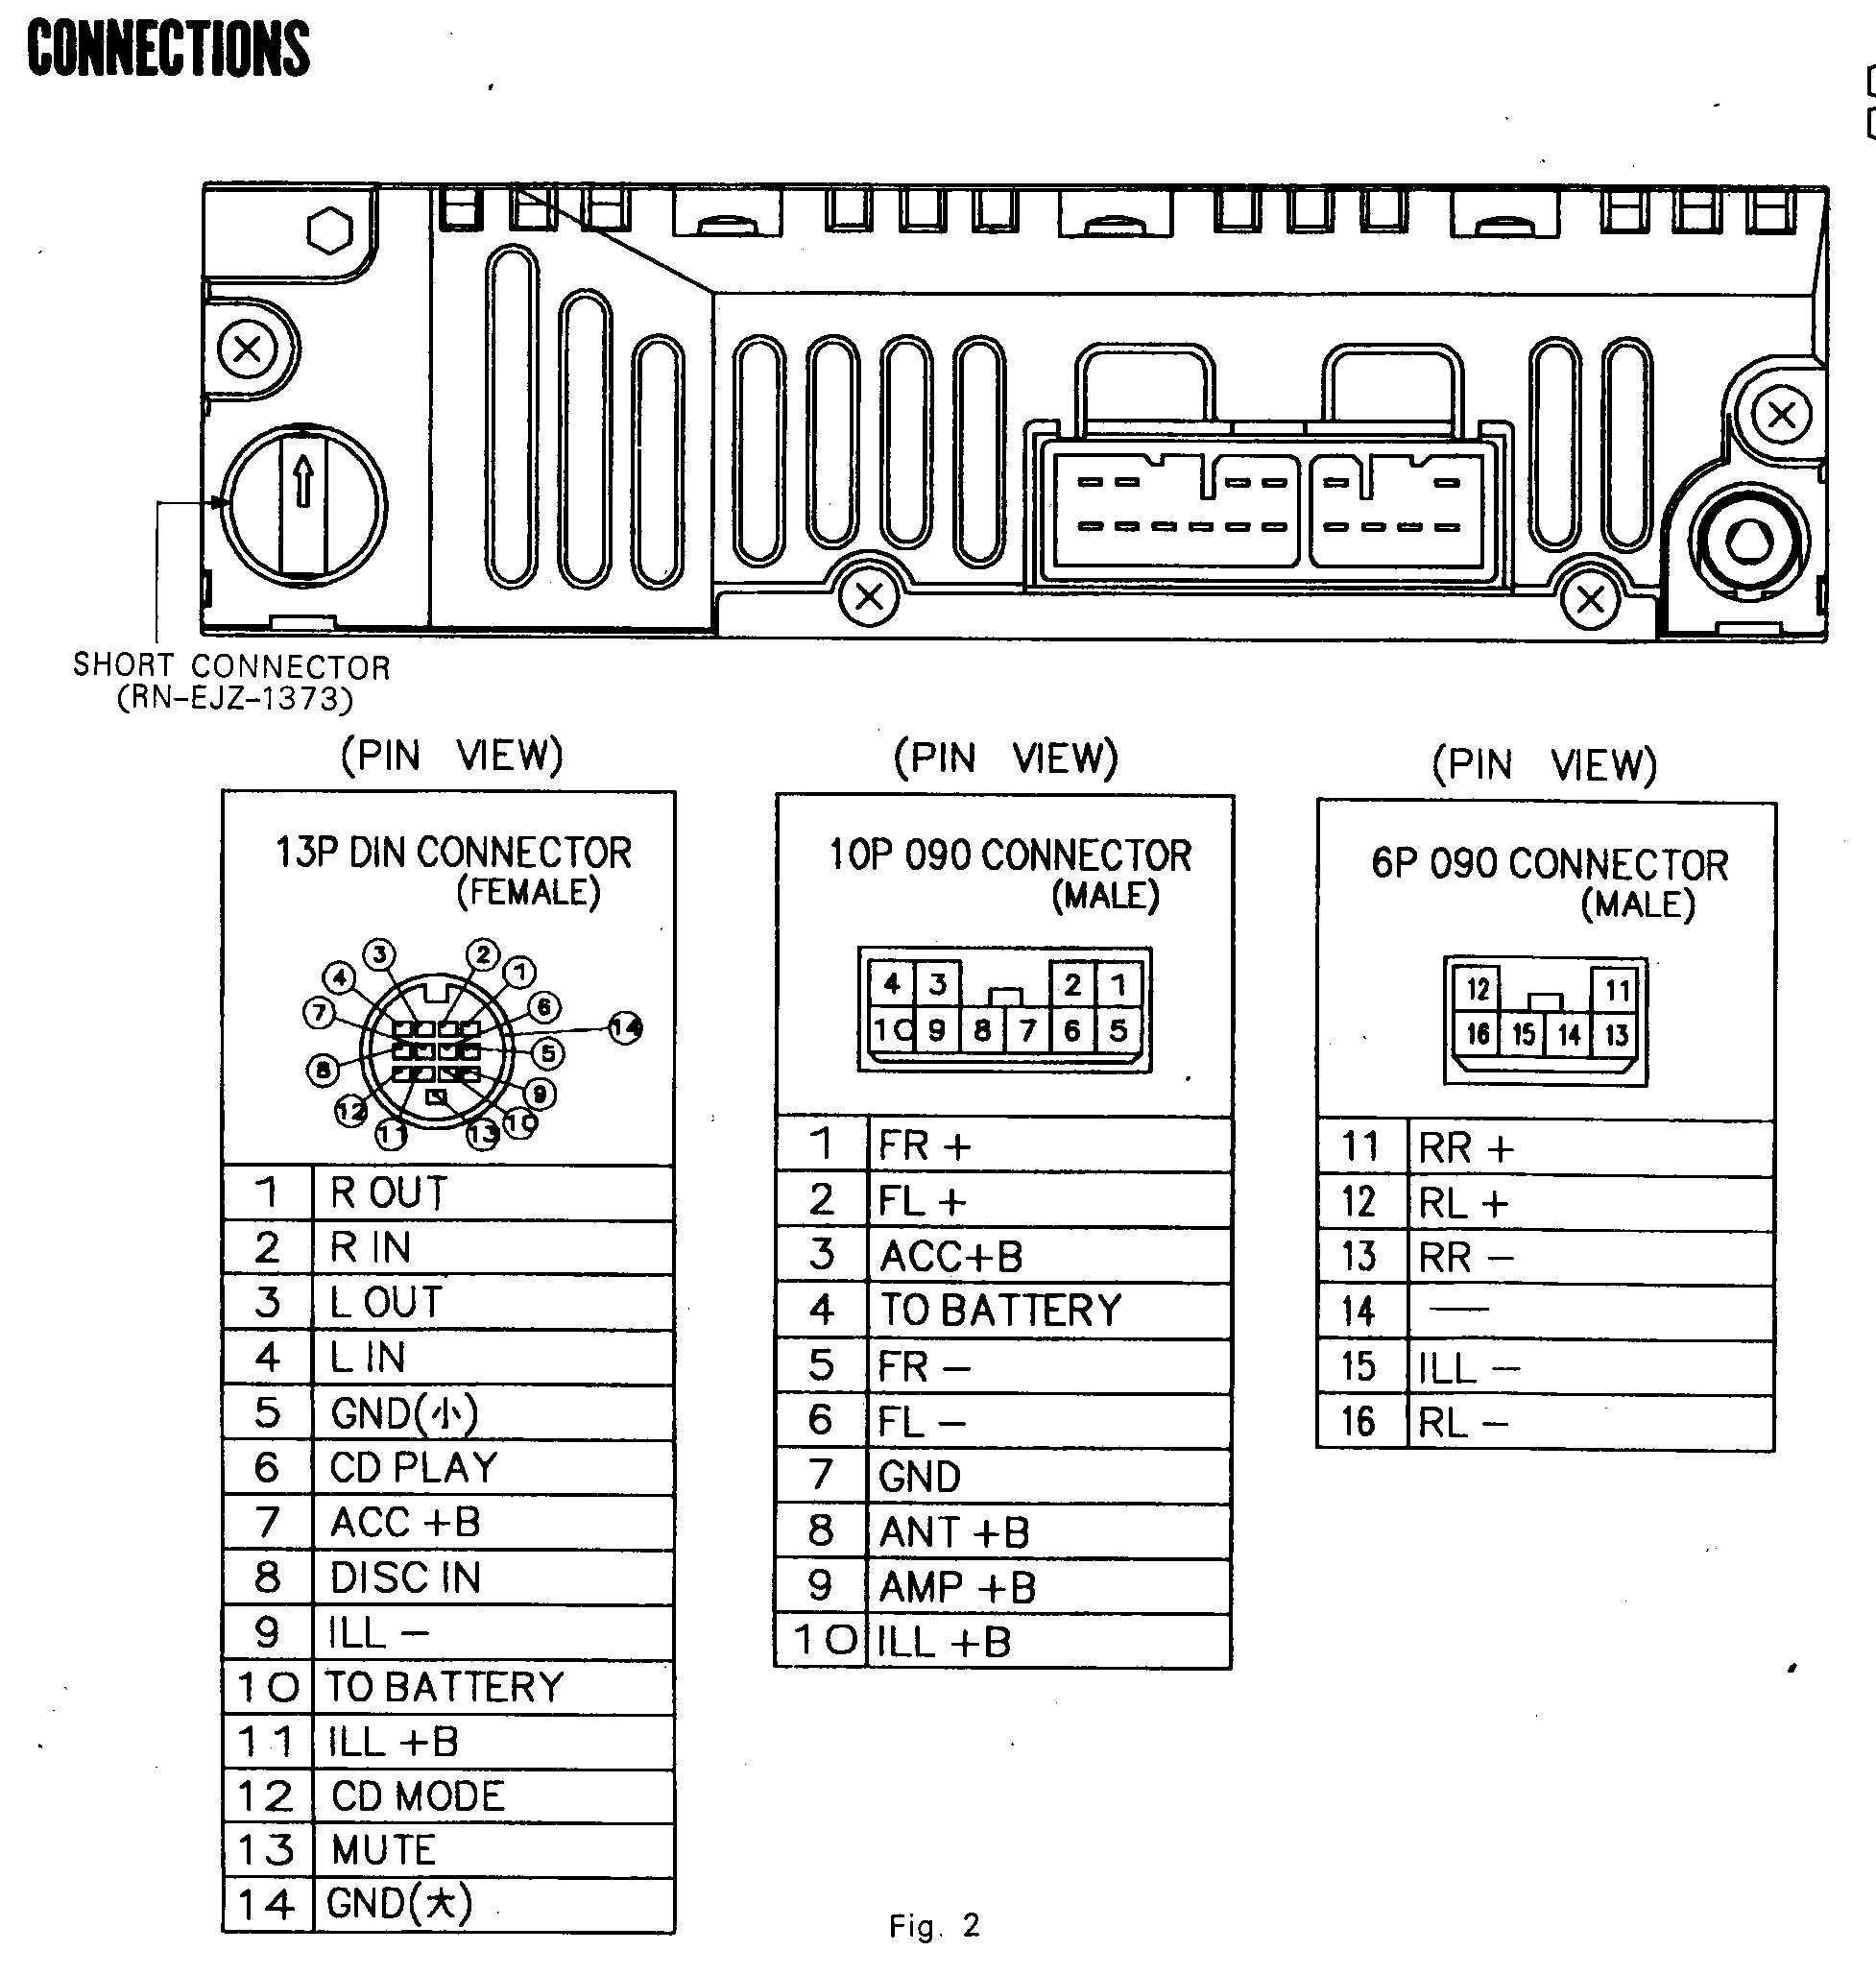 small resolution of wiring 86120 toyota diagram tundra 0c130 schematic diagram database toyota 86120 0c130 wiring diagram wiring diagram